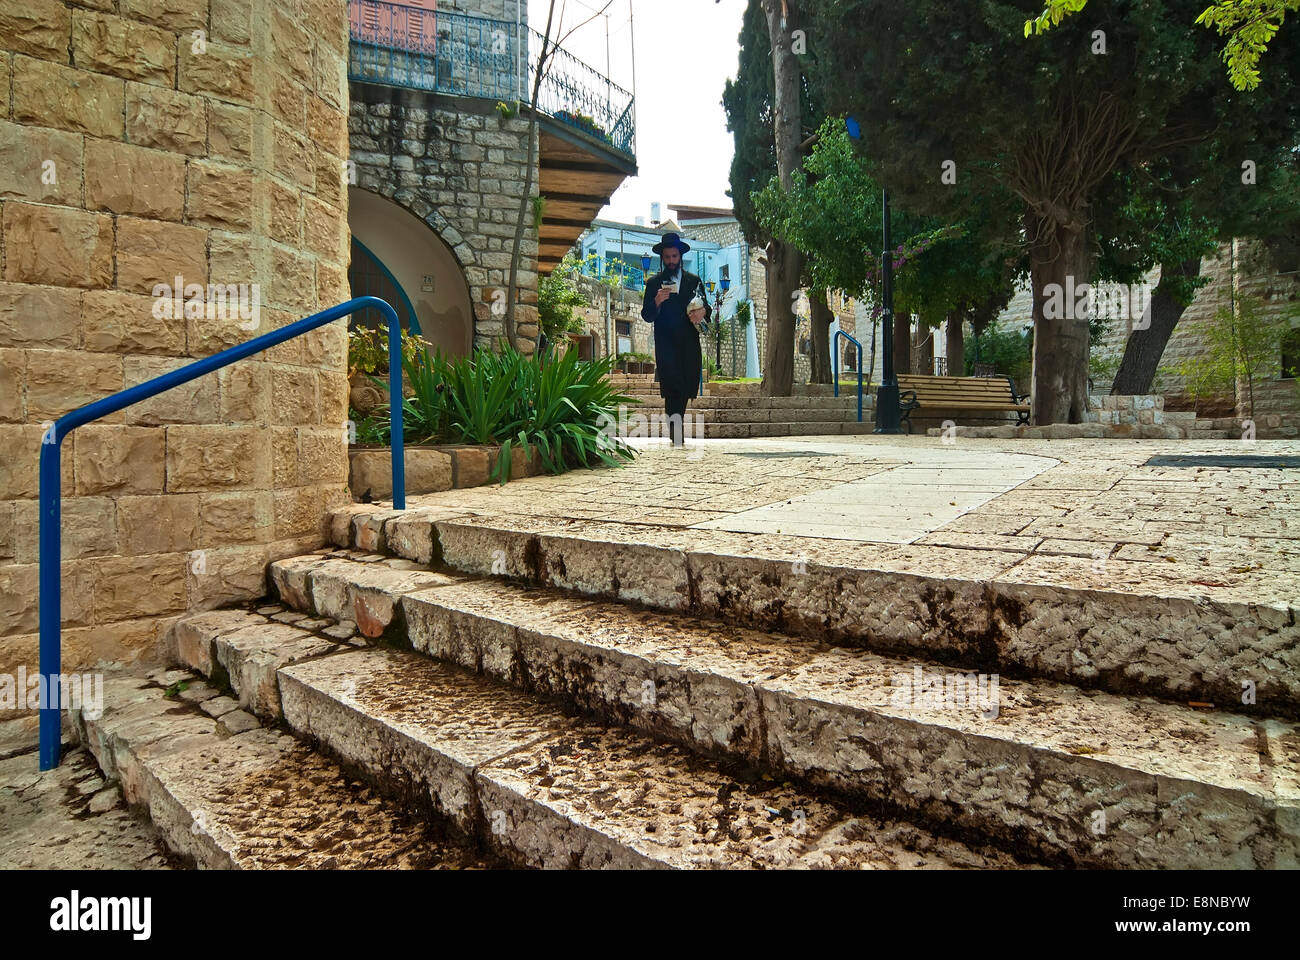 Religious man in Safed, Israel - Stock Image